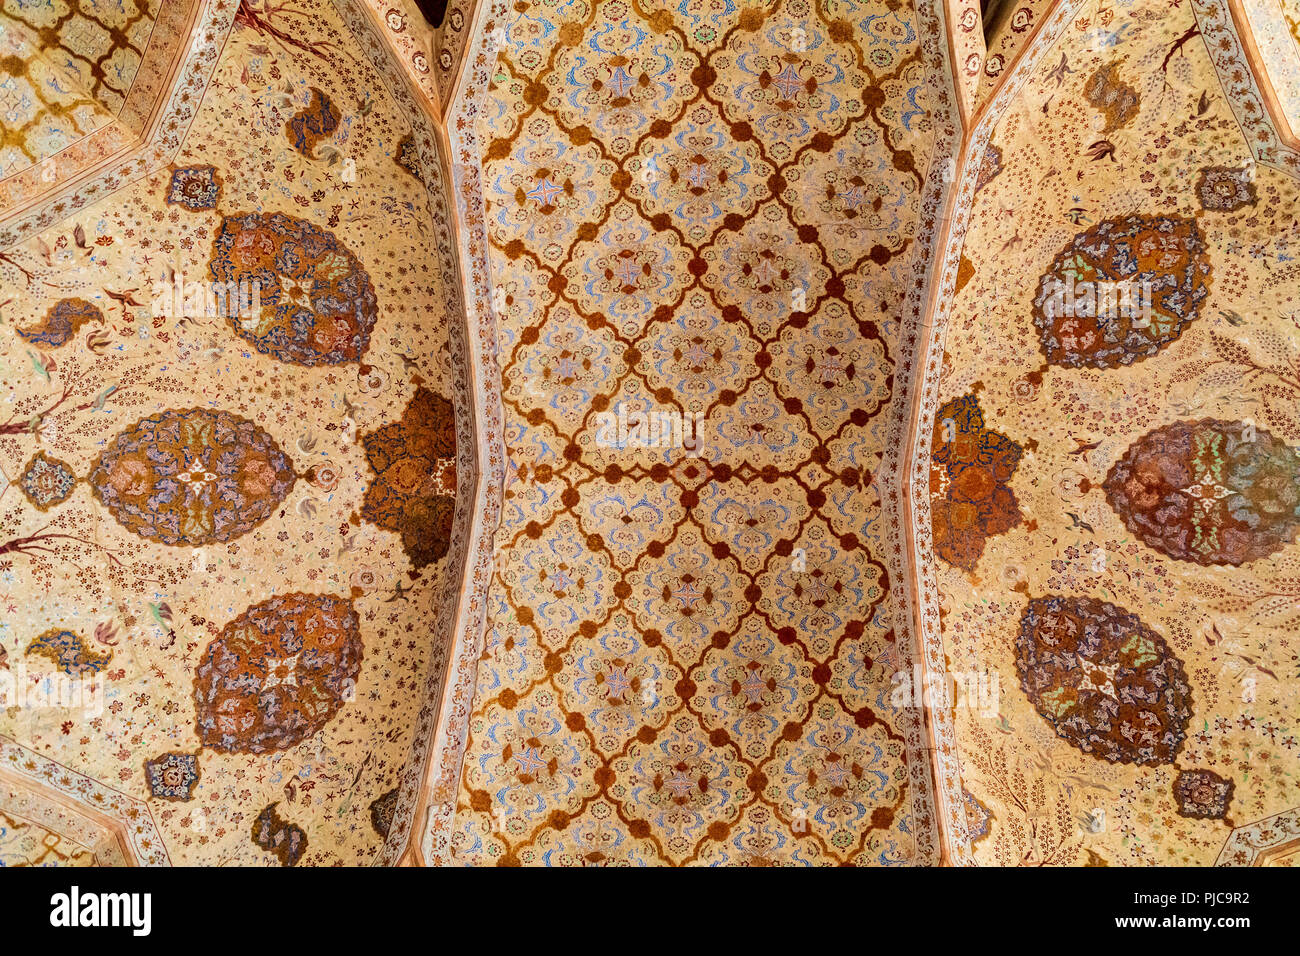 Islamic Republic of Iran  Isfahan  Ali Qapu grand palace, located on